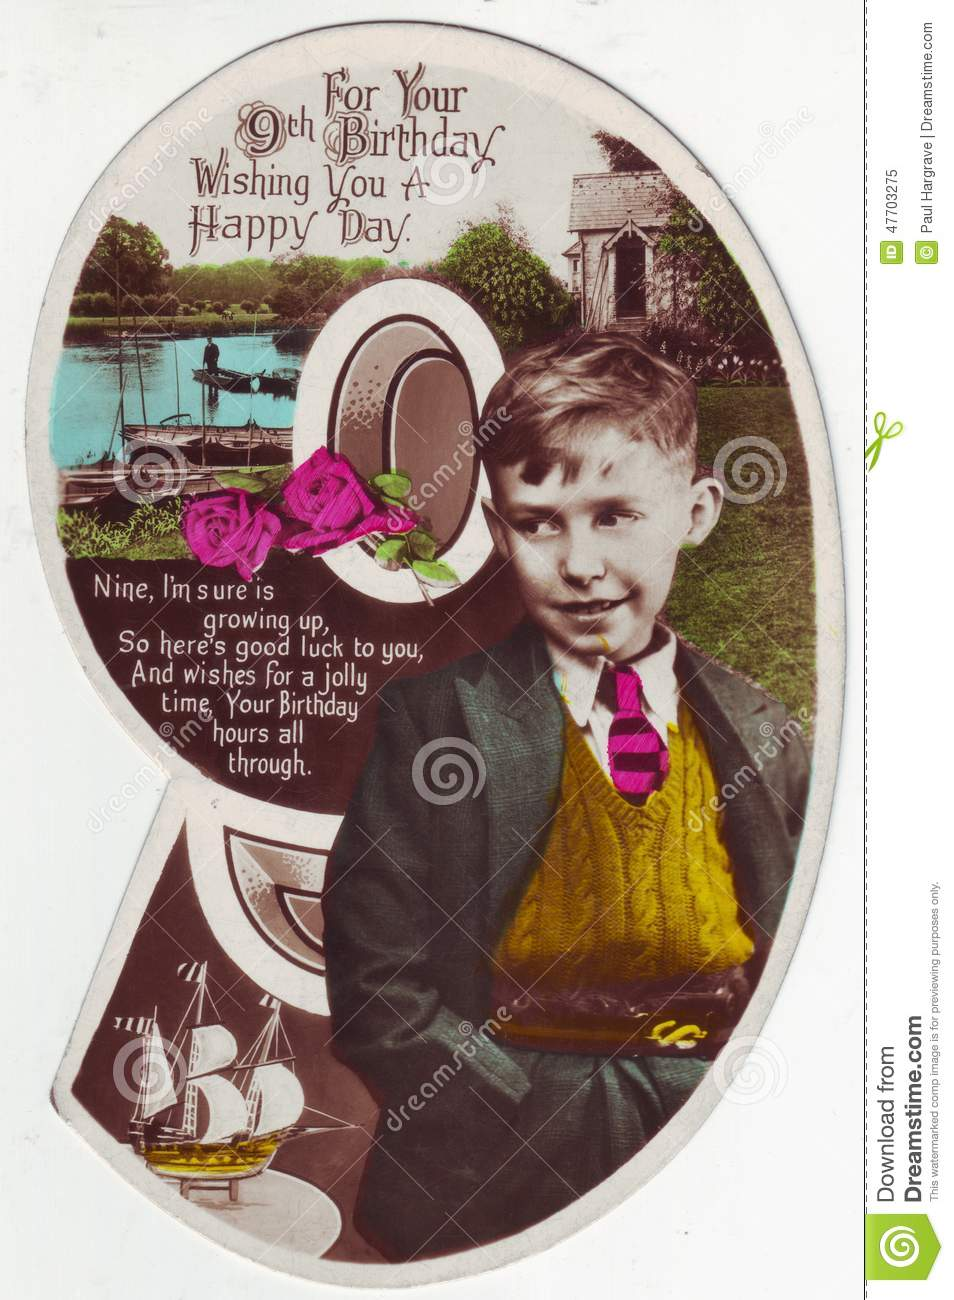 Antique Birthday Greeting Card English With Verse To A 9 Year Old Boy Shaped As Number